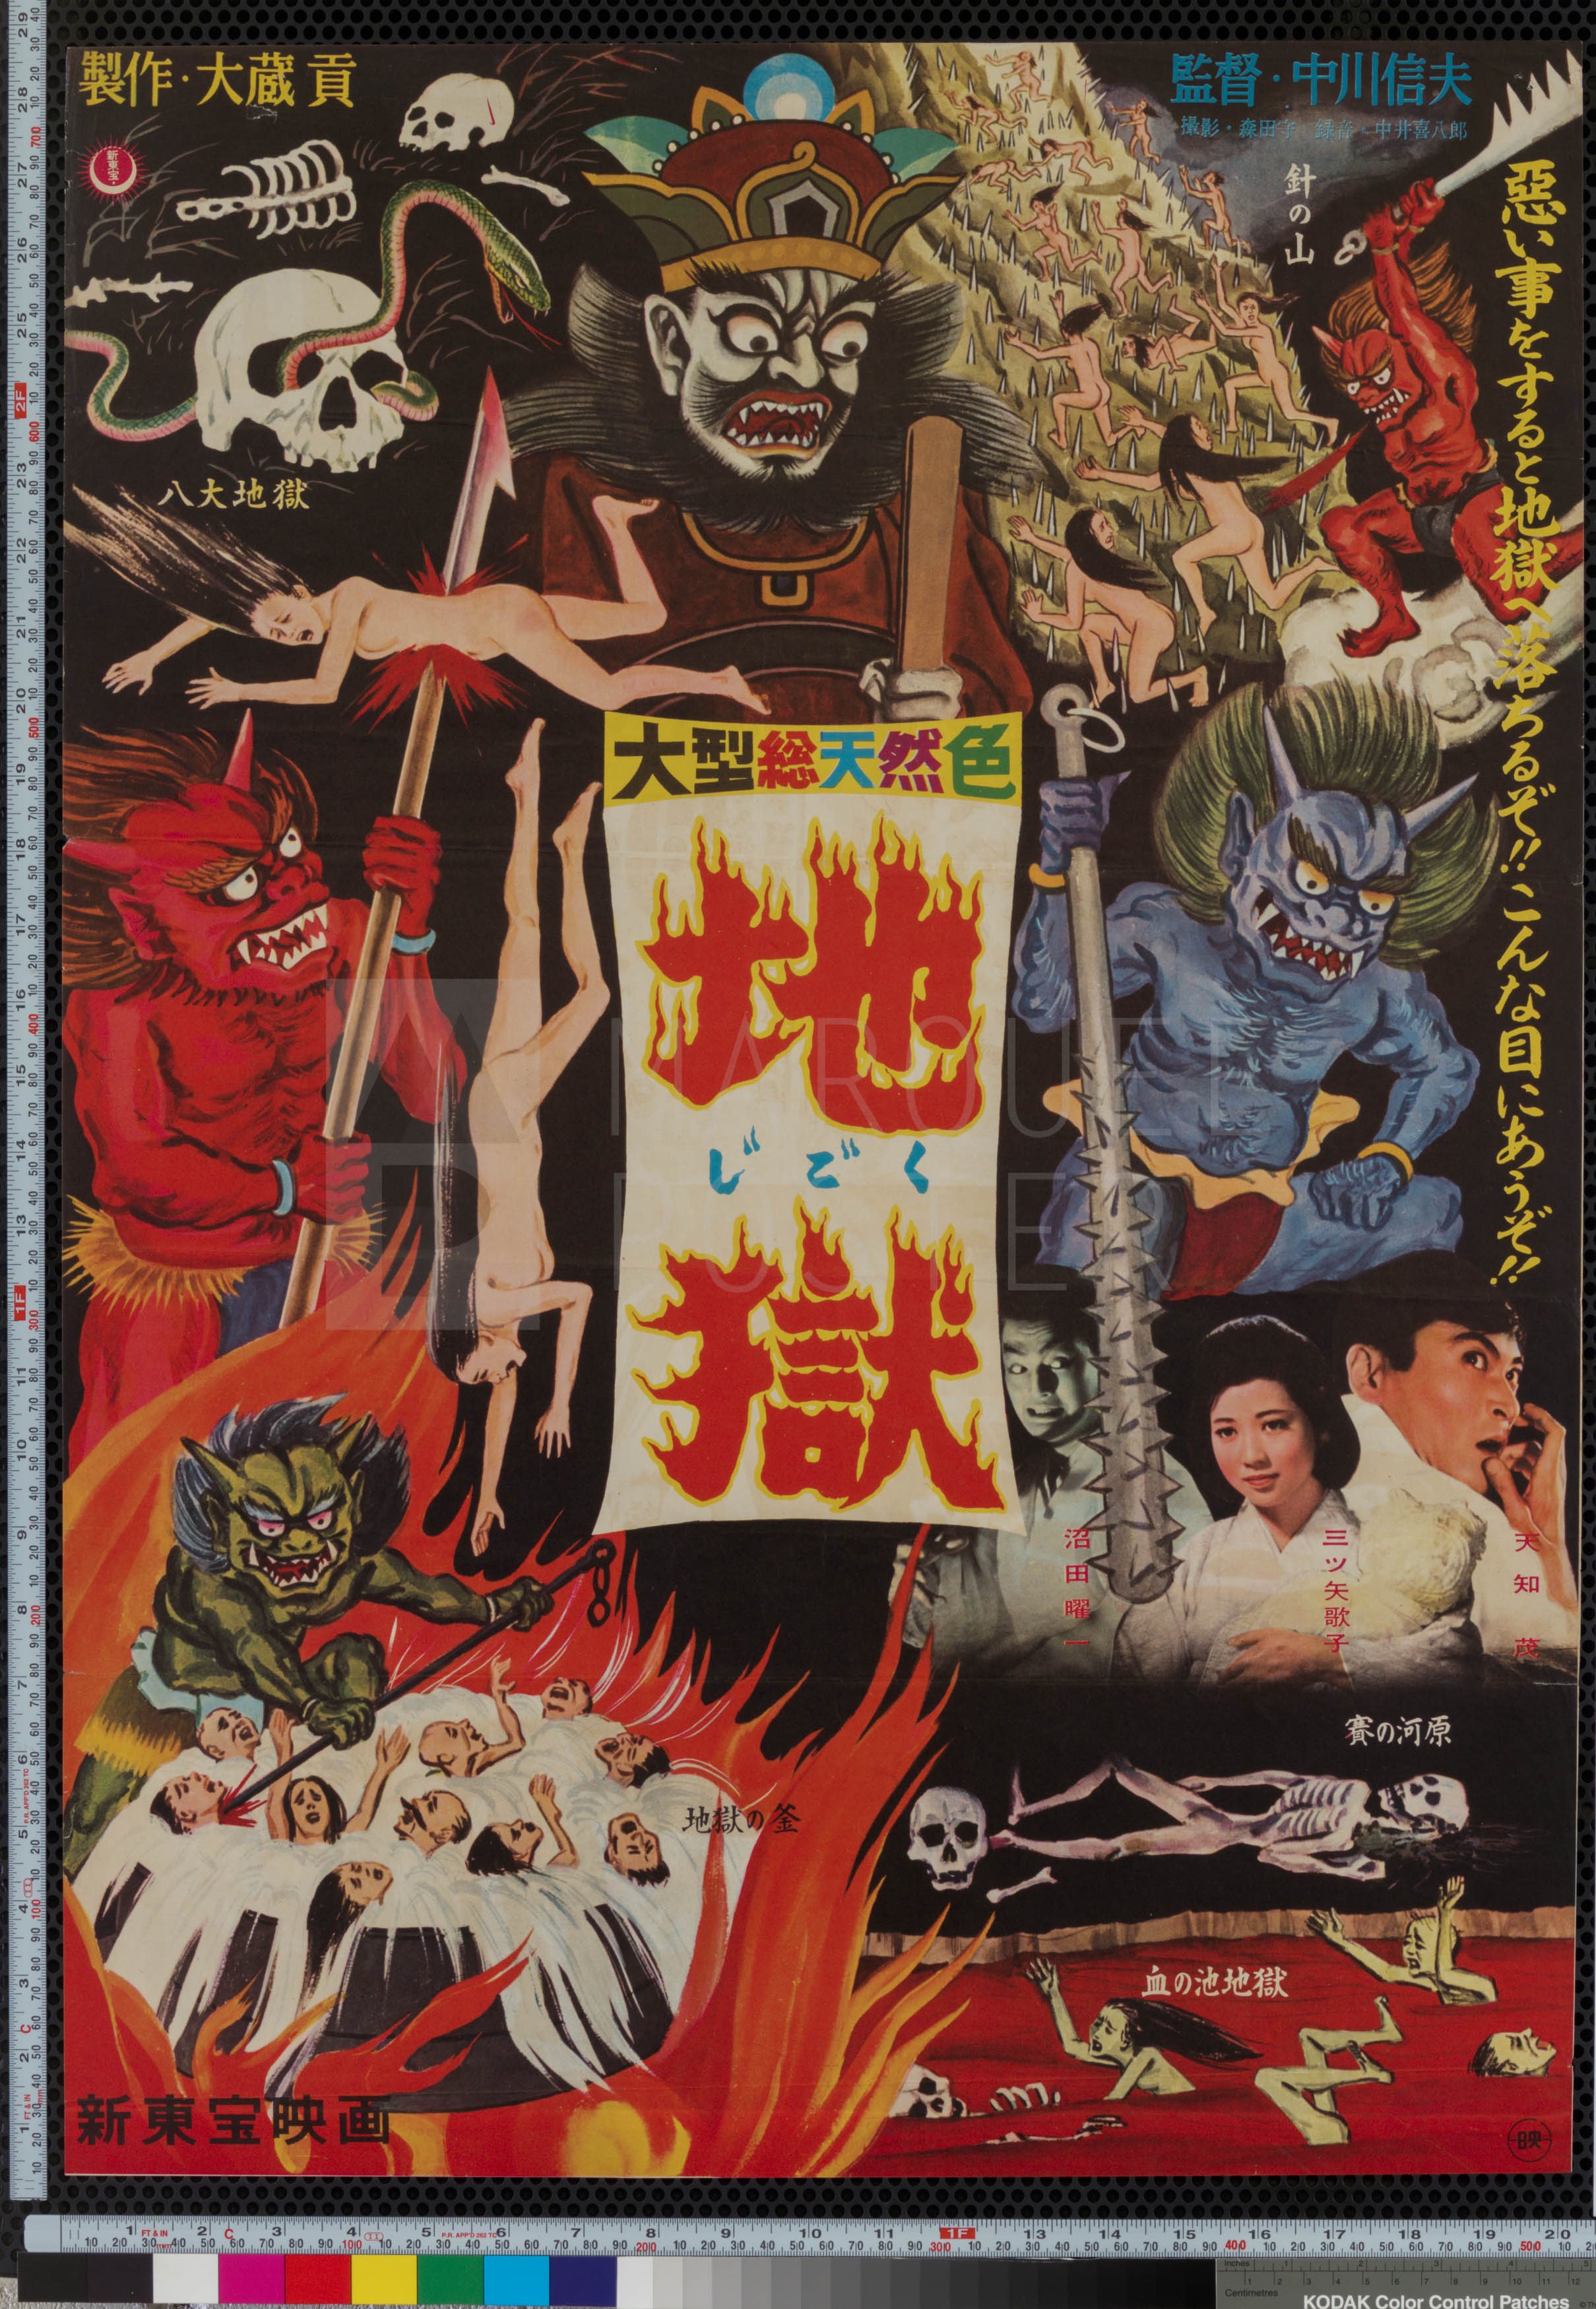 9-jigoku-illustrated-style-japanese-b2-1960-02